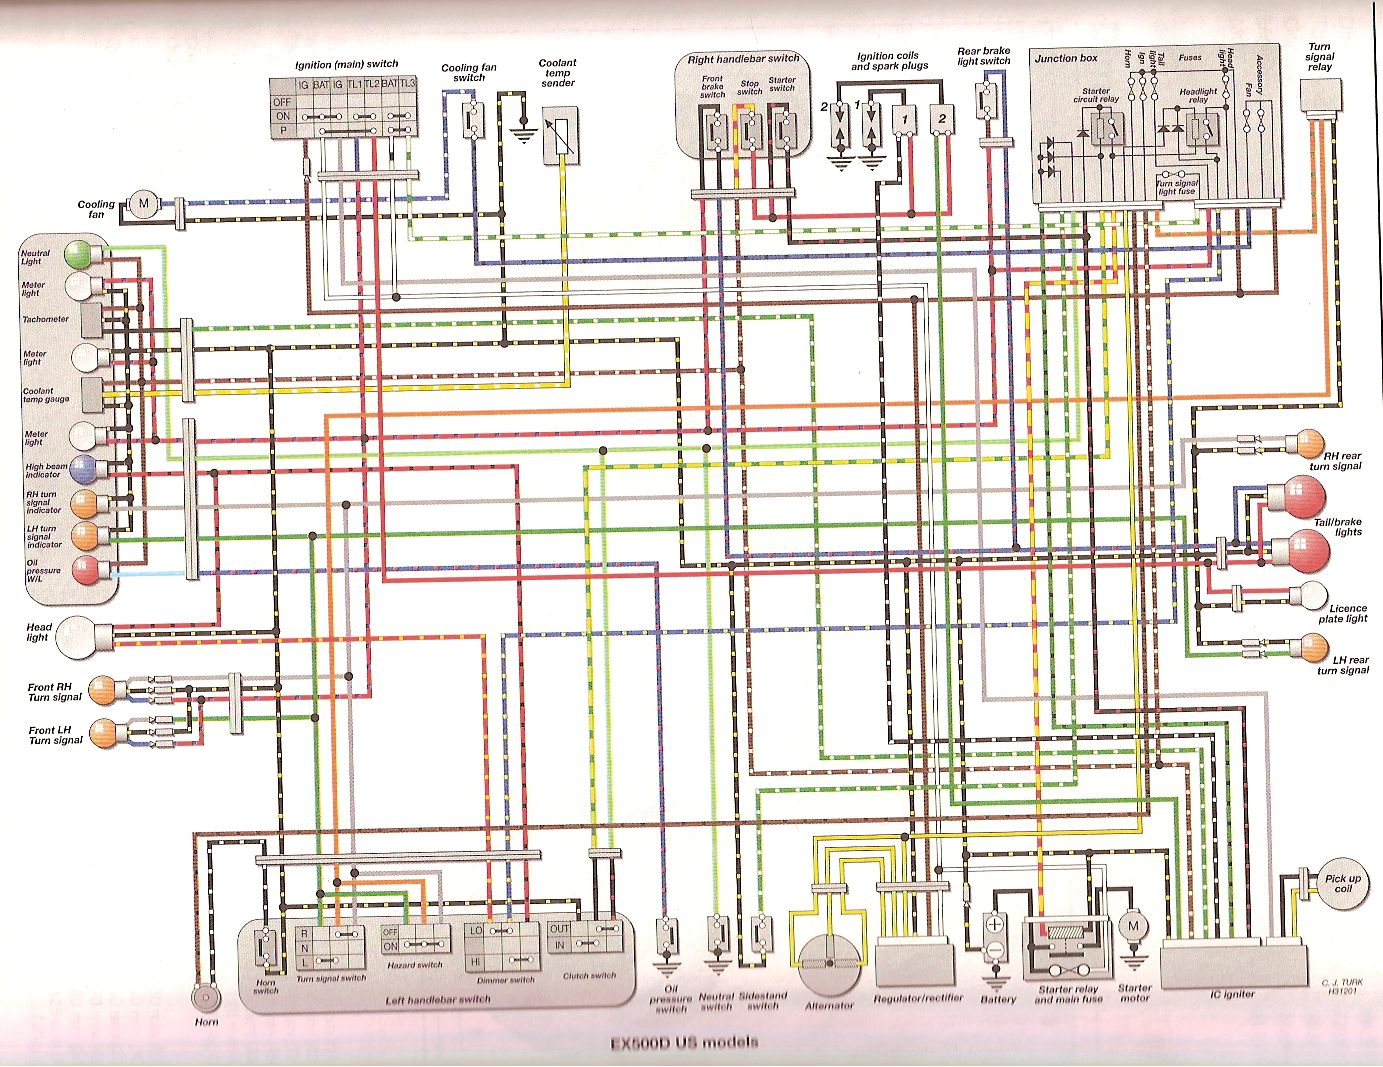 Harley Davidson Headlight Wiring Diagram Radio Harness Stereo Electronic Speedometer Smart Speedomet X additionally Buick Lesabre Wiring Diagram Diagrams Schematics With B Dc Cb likewise D Fan Relay Bypass Question V Power Fuse Panel together with Microfiche Mv Agusta Moto Pieces Detachees as well Original. on 2003 yamaha r6 wiring diagram